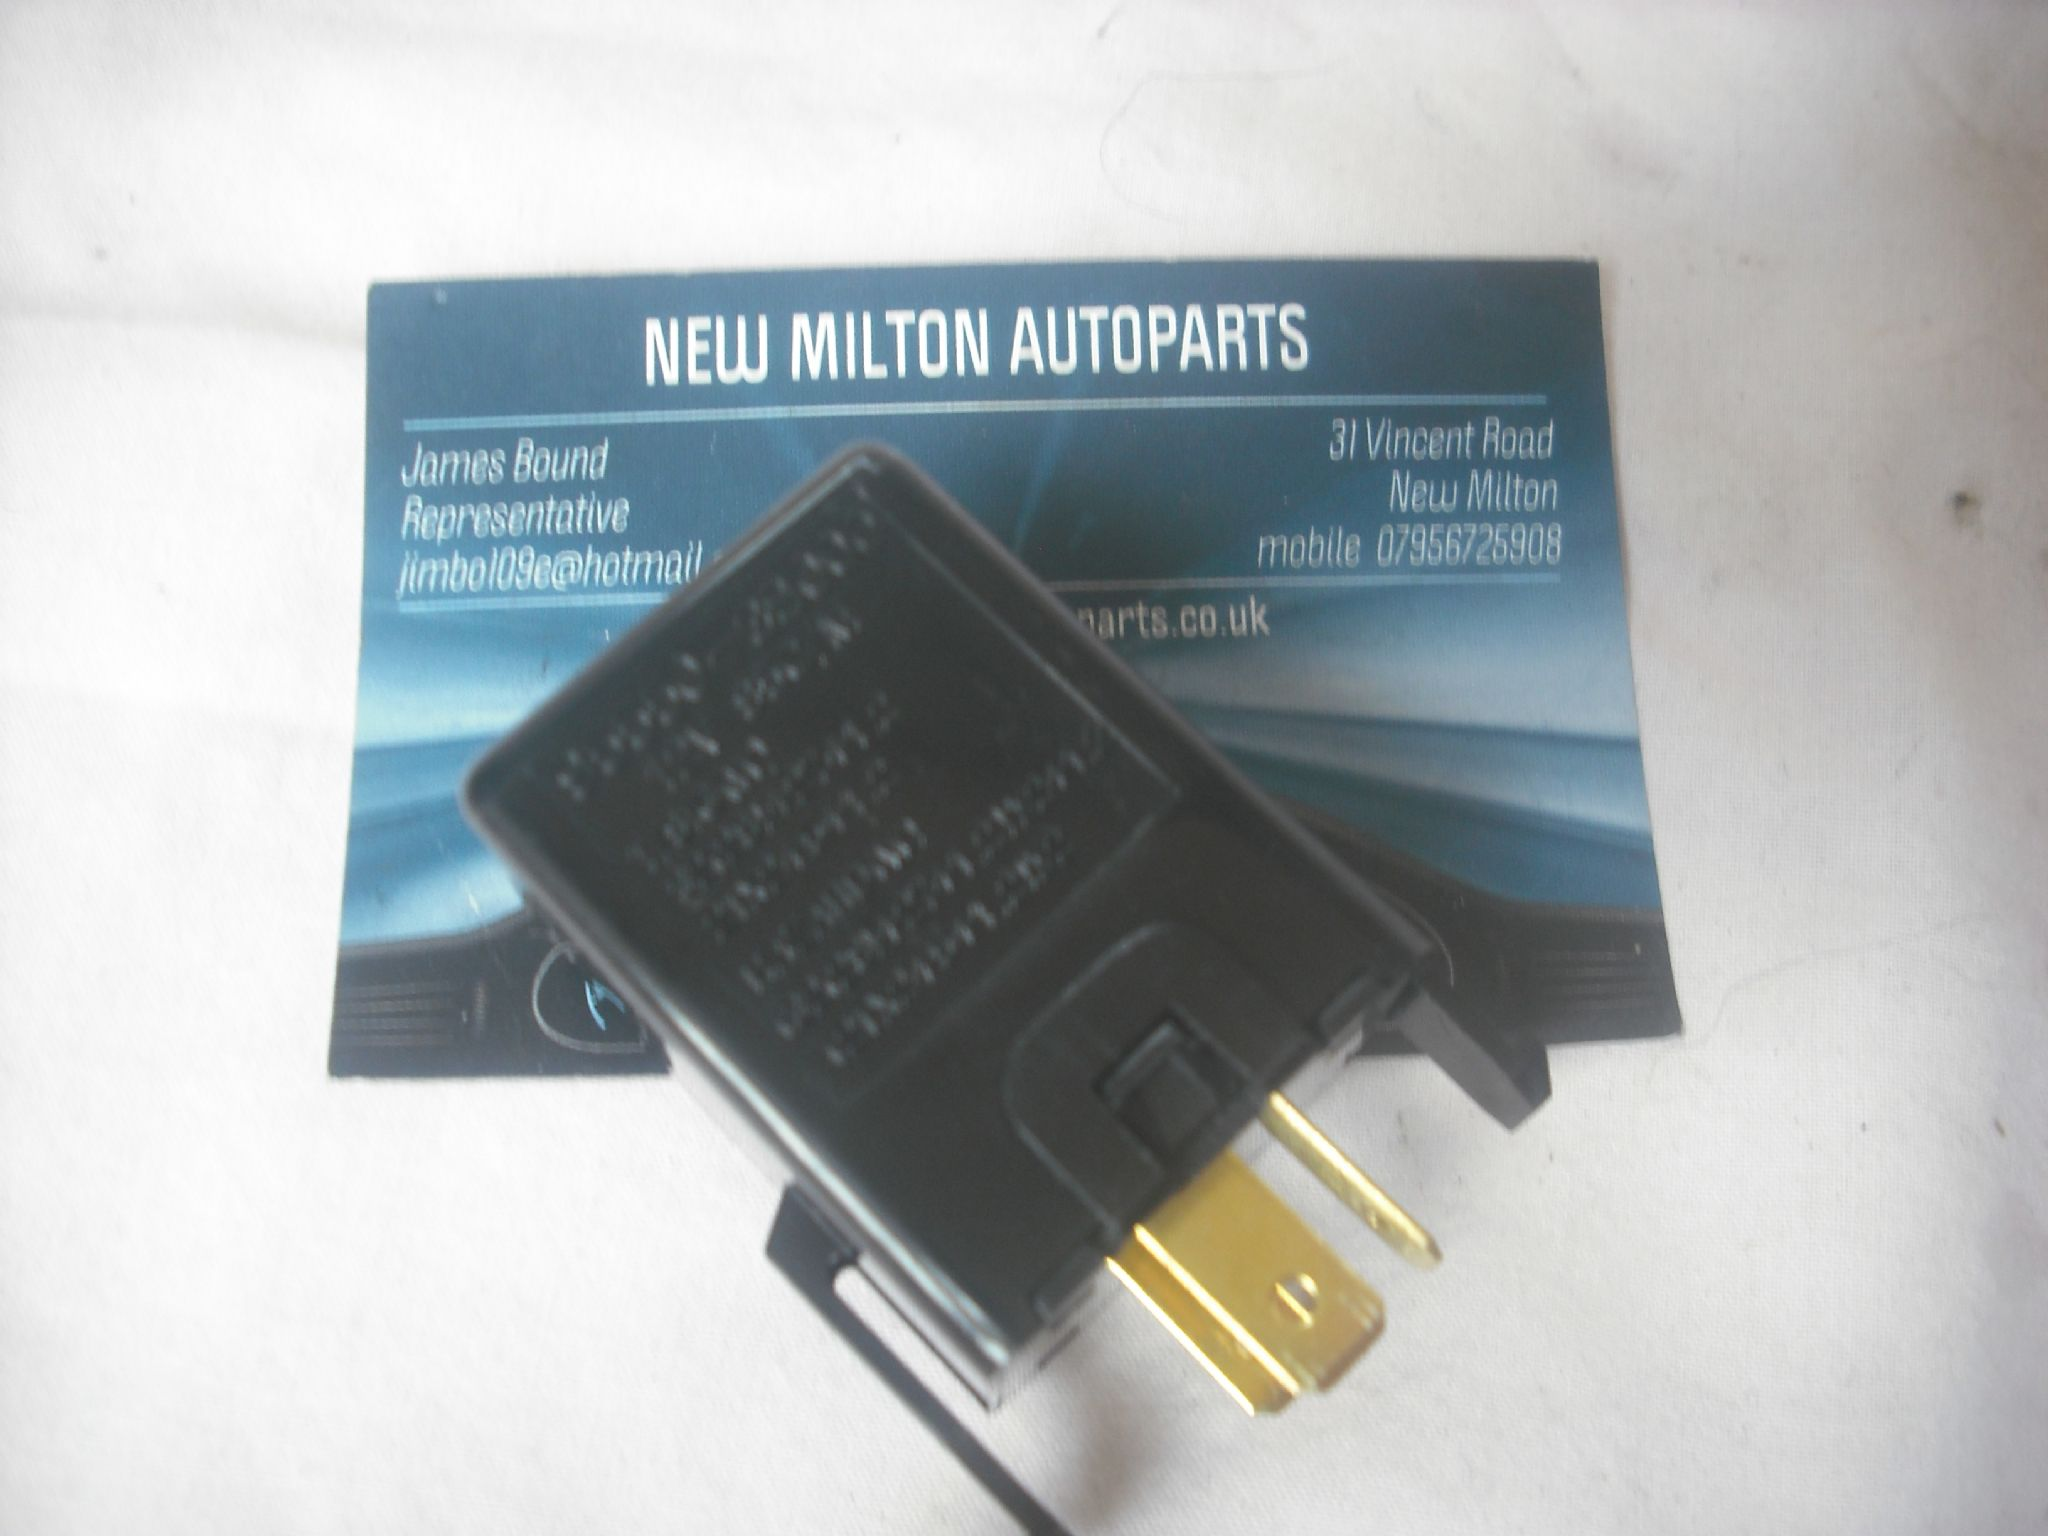 A GENUINE HYUNDAI MATRIX INDICATOR FLASHER RELAY 95530-39000 12V 85C/M